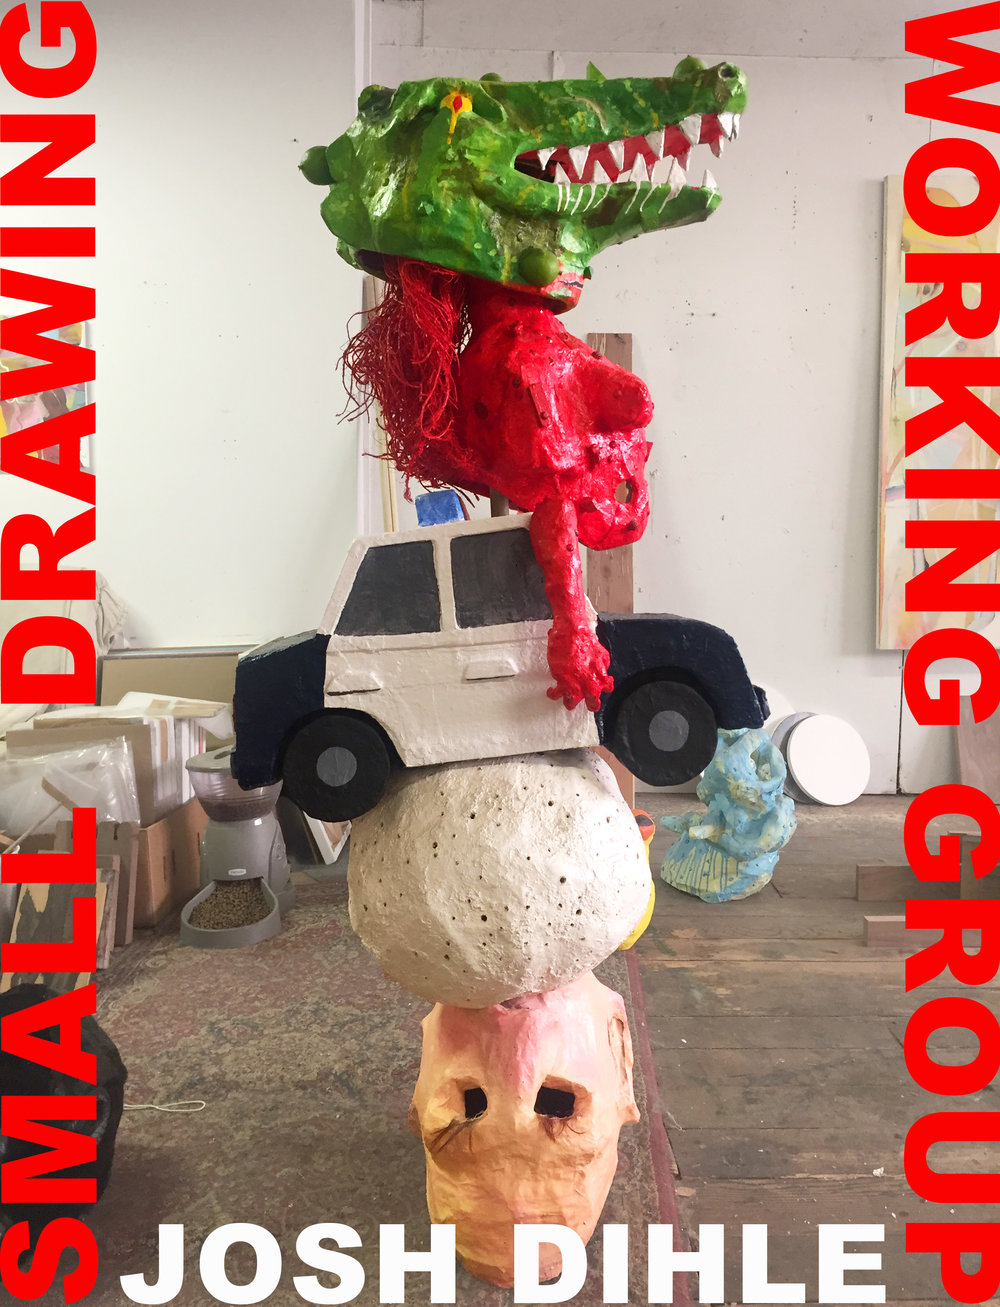 Small Drawing Working Group opens September 9th in Chicago at 4th Ward Project Space